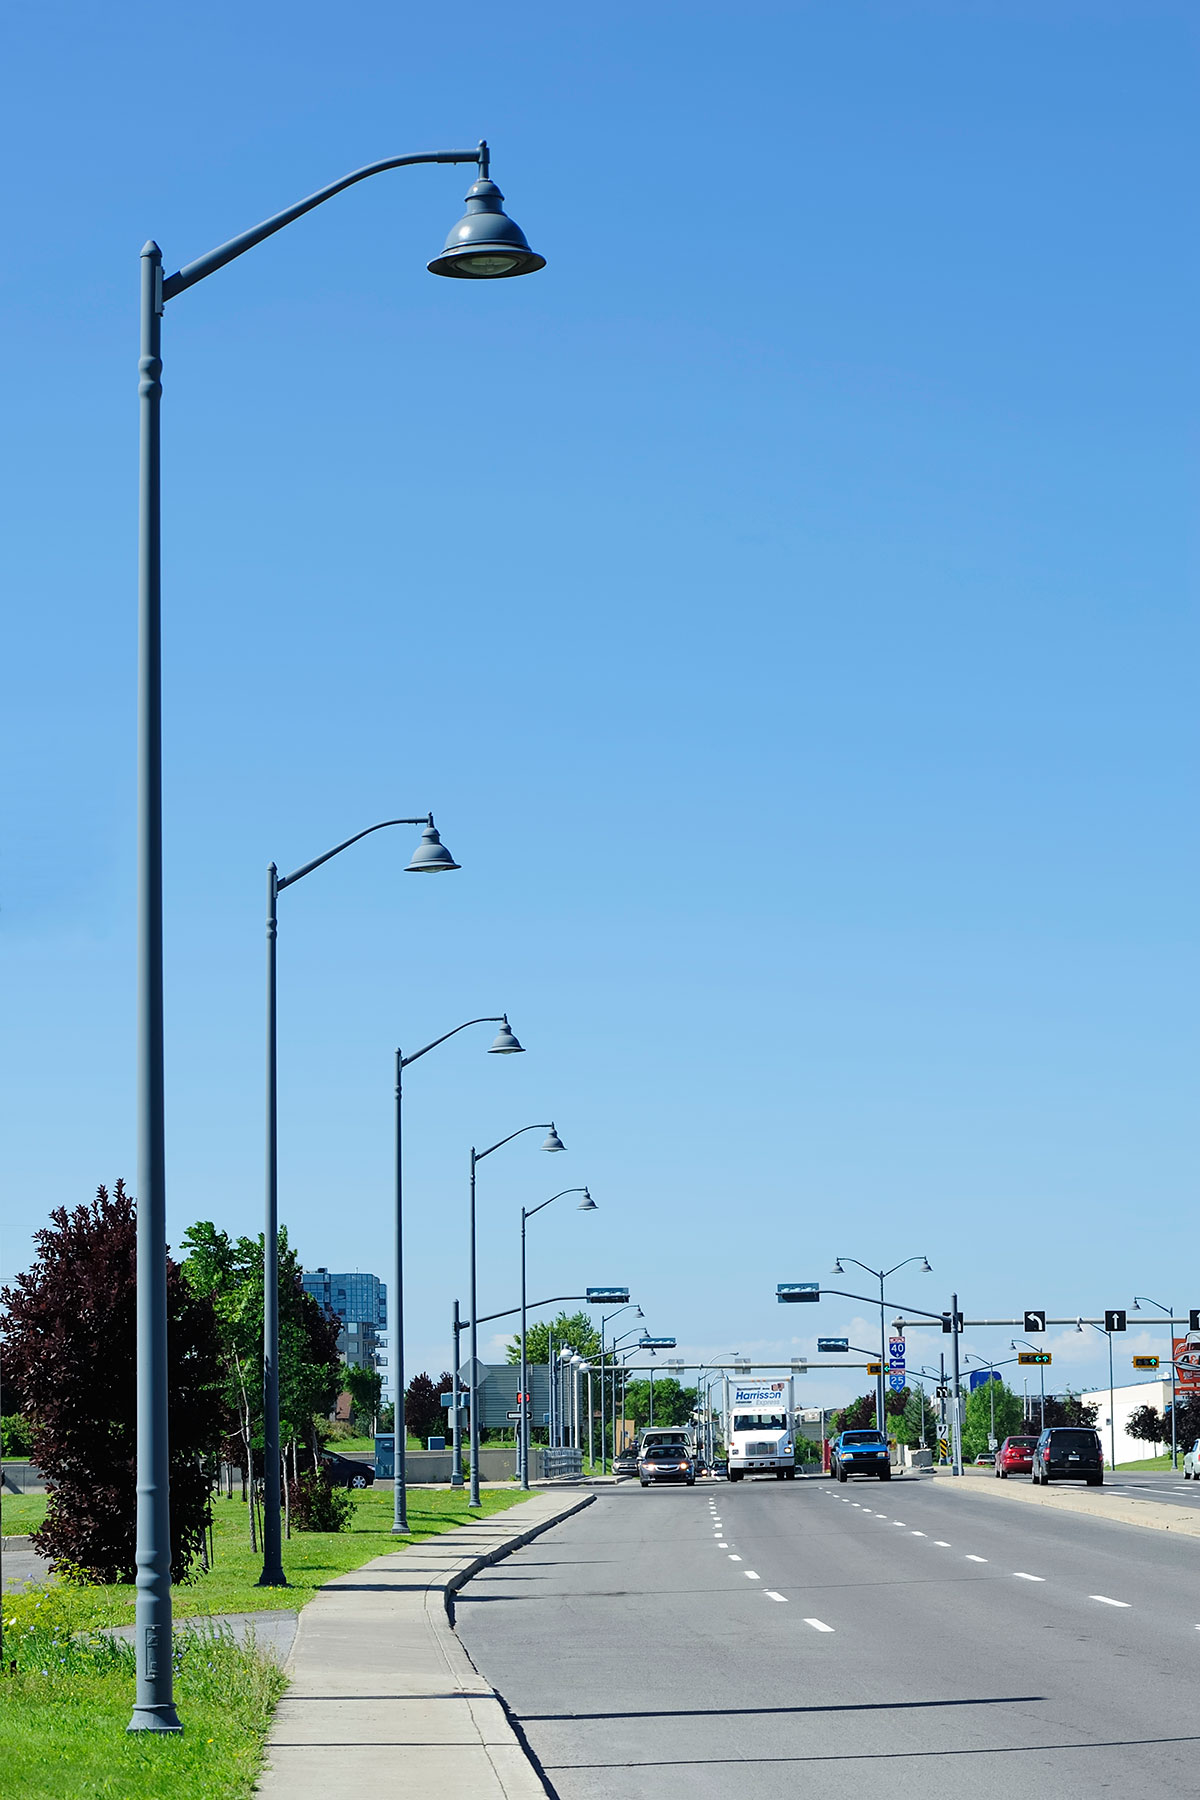 Valmont structures canada decorative light poles and lamp